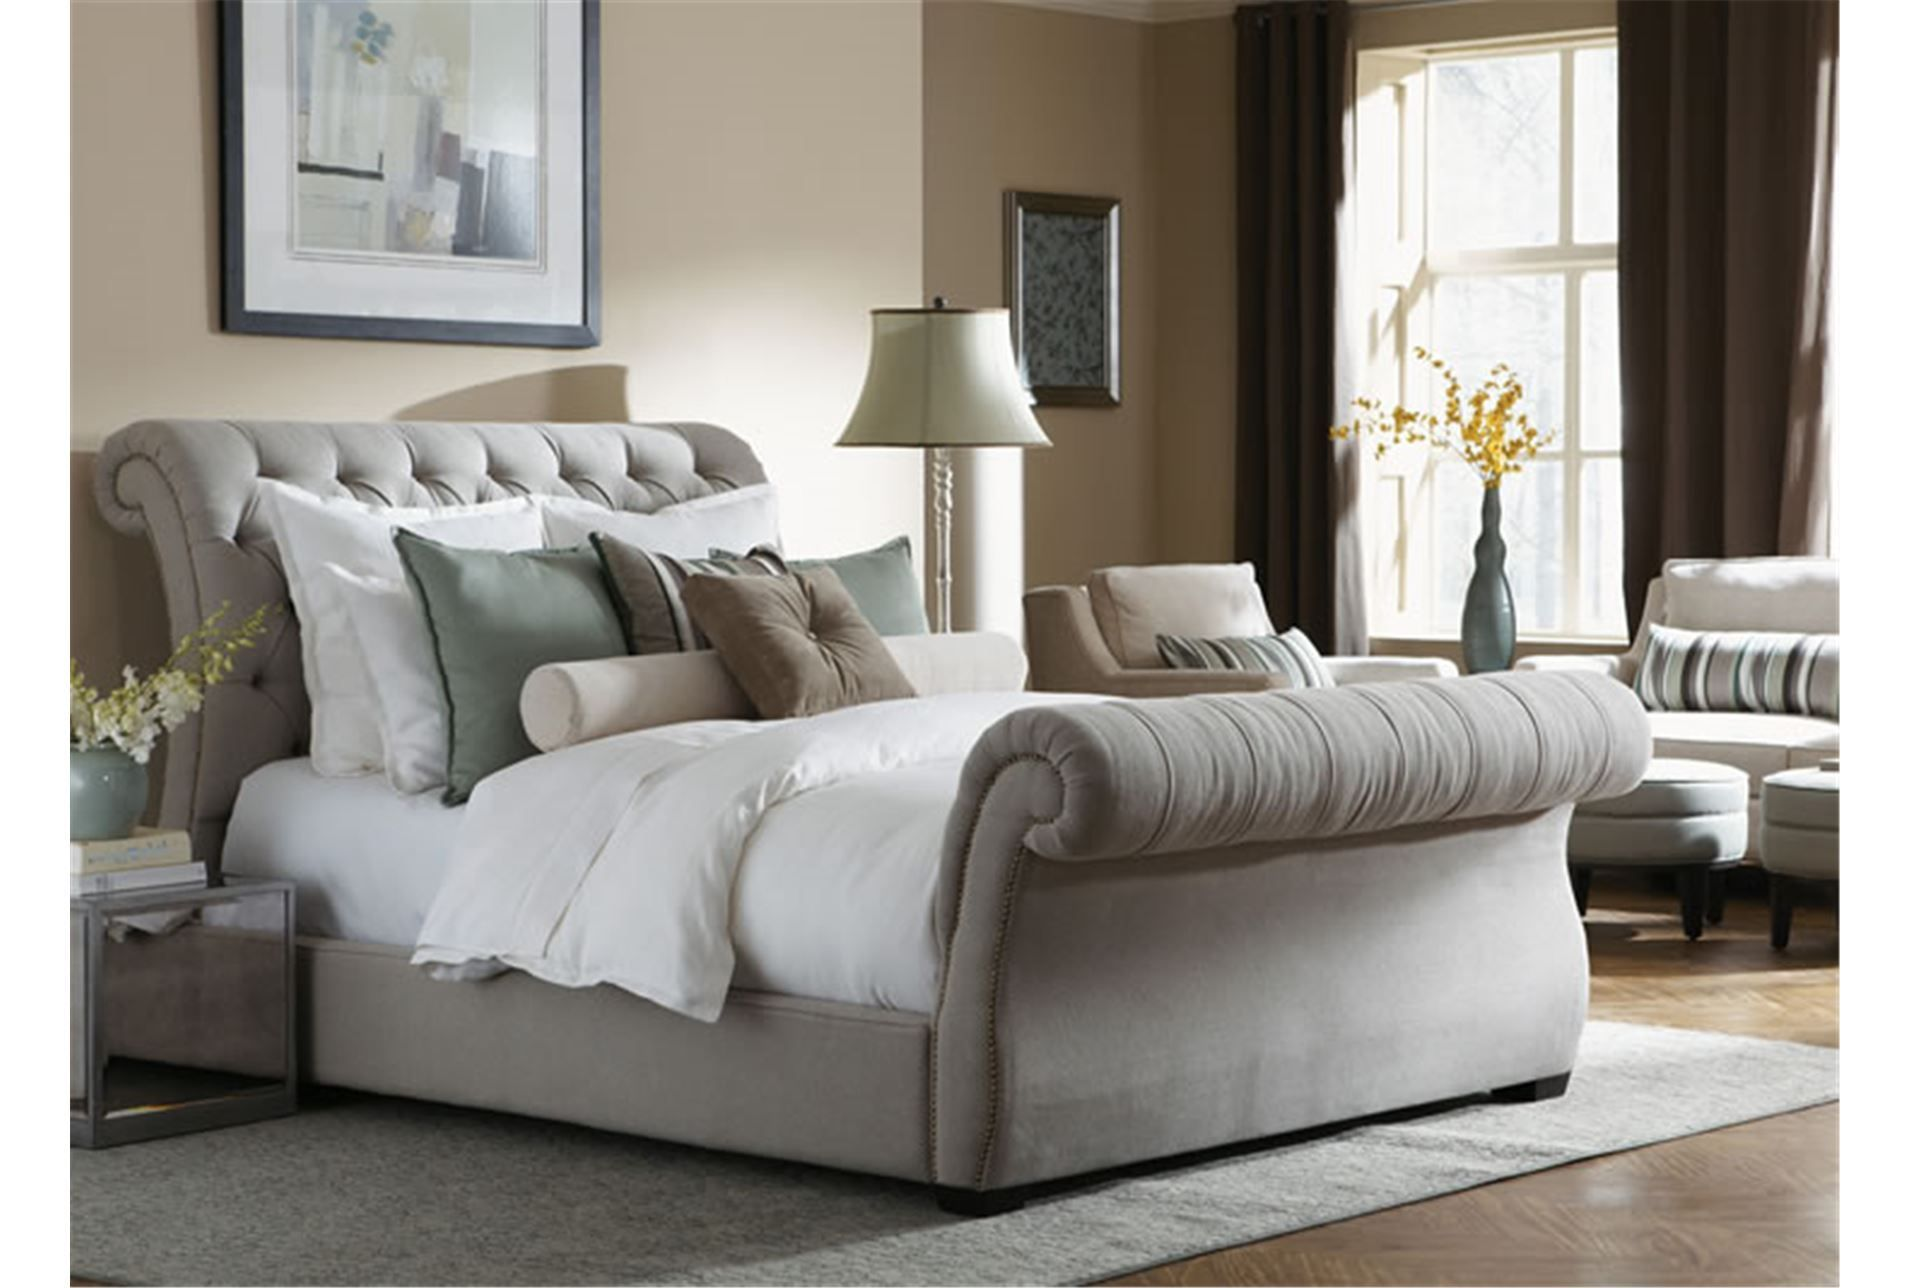 Interior Sleigh Bed Bedding kensington cal king sleigh bed master bedroom for the home bed